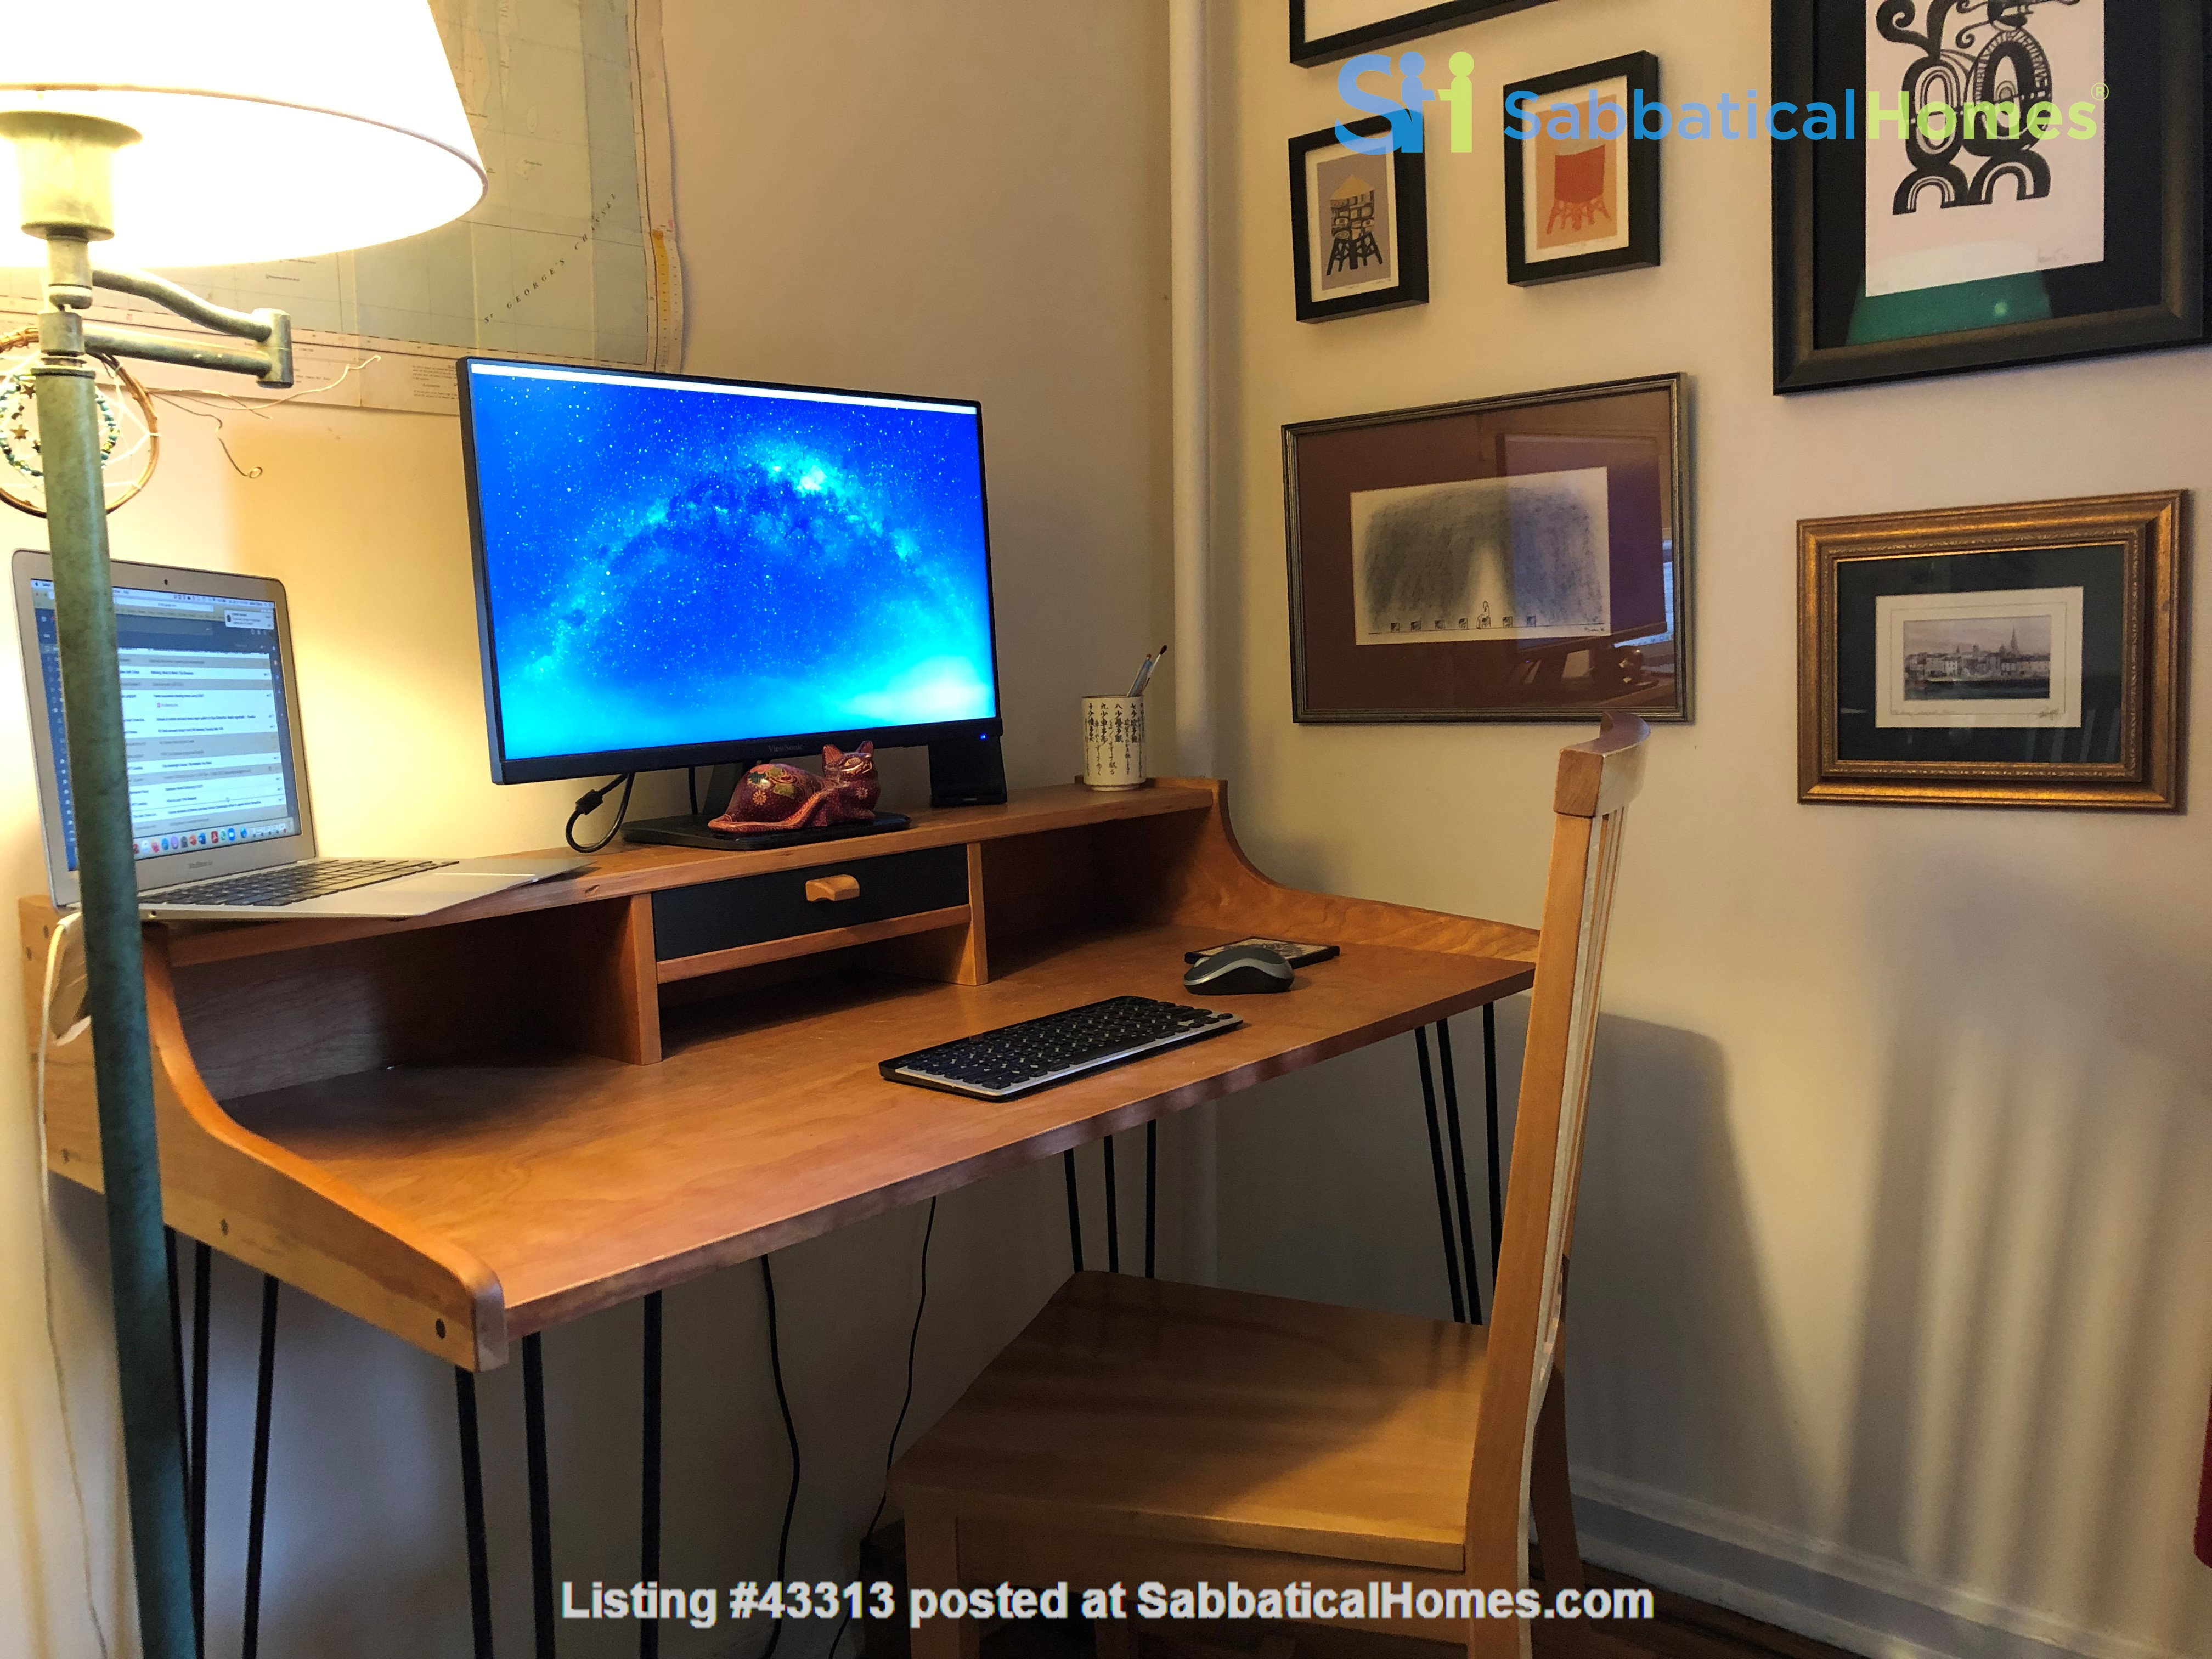 2-bedroom in Leafy New York City neighborhood Home Rental in Queens County, New York, United States 5